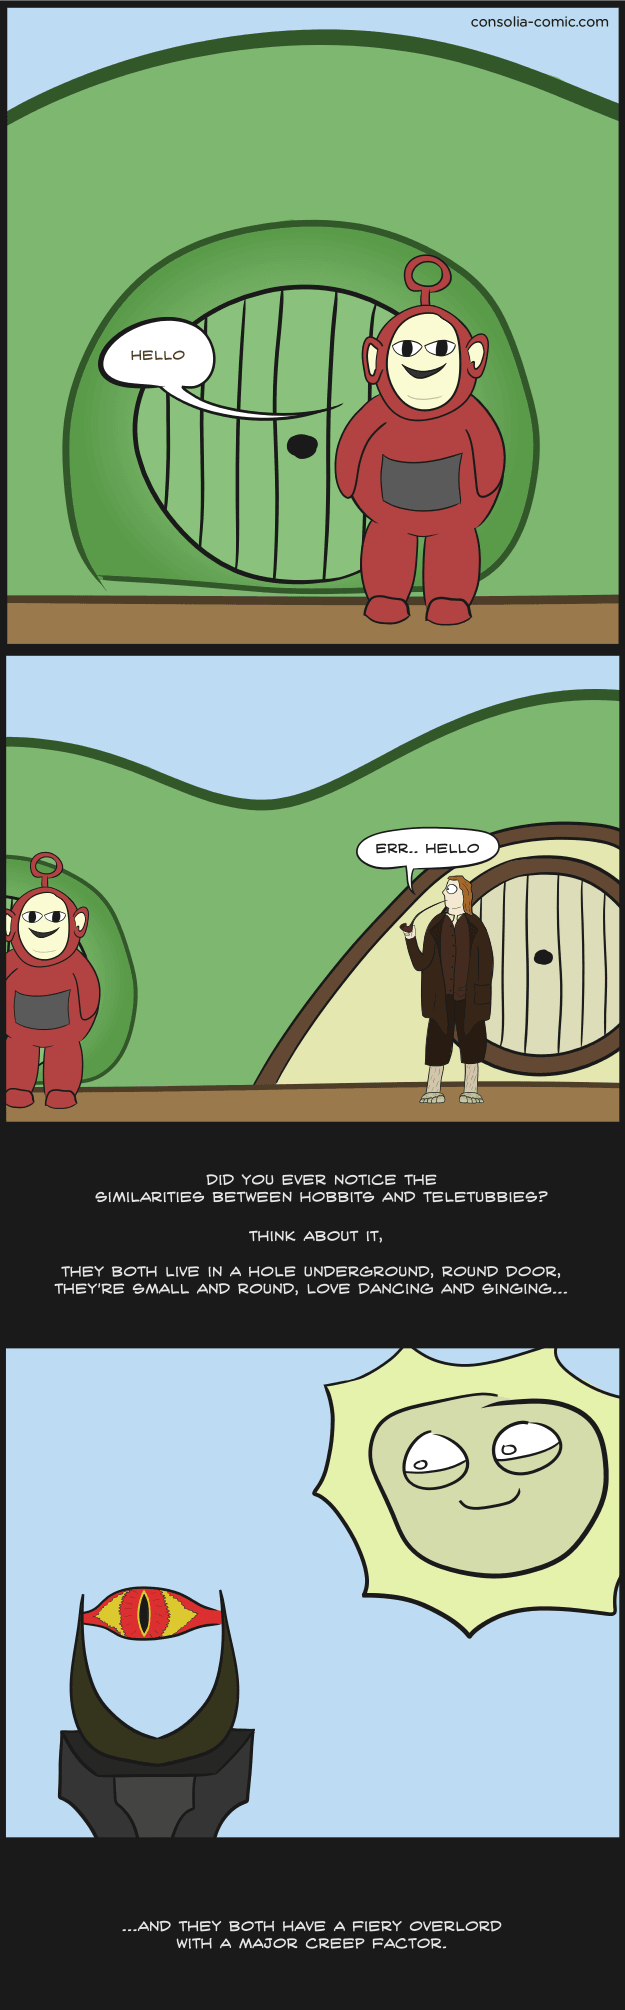 teletubbies dwarves hobbit web comics - 8771289856